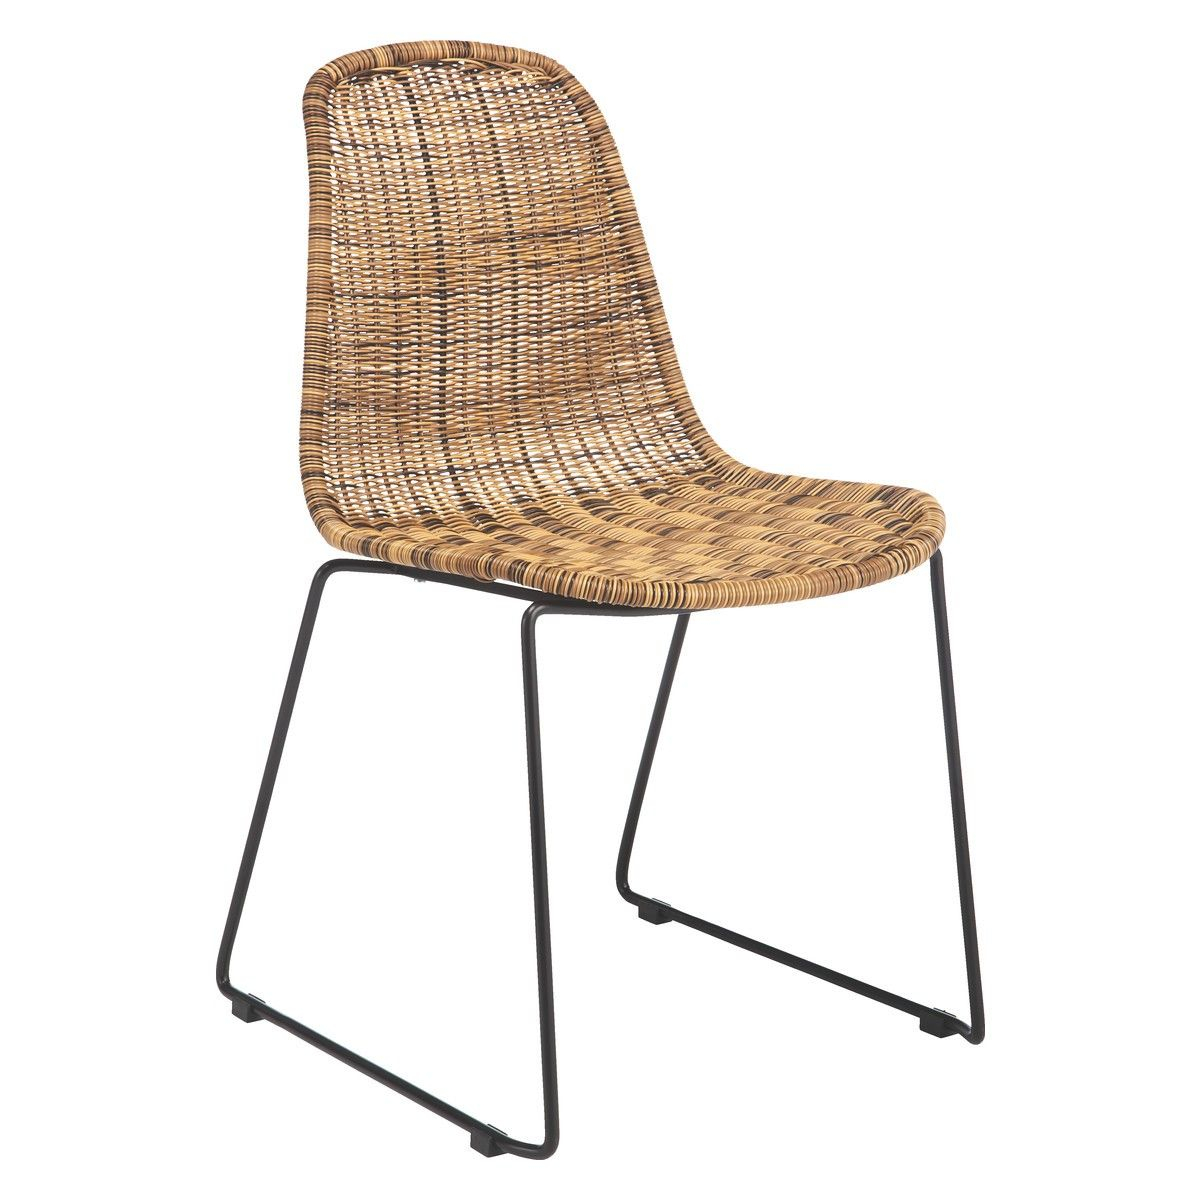 Wicker Dining Chairs Mickey Synthetic Rattan Chair pertaining to dimensions 1200 X 1200